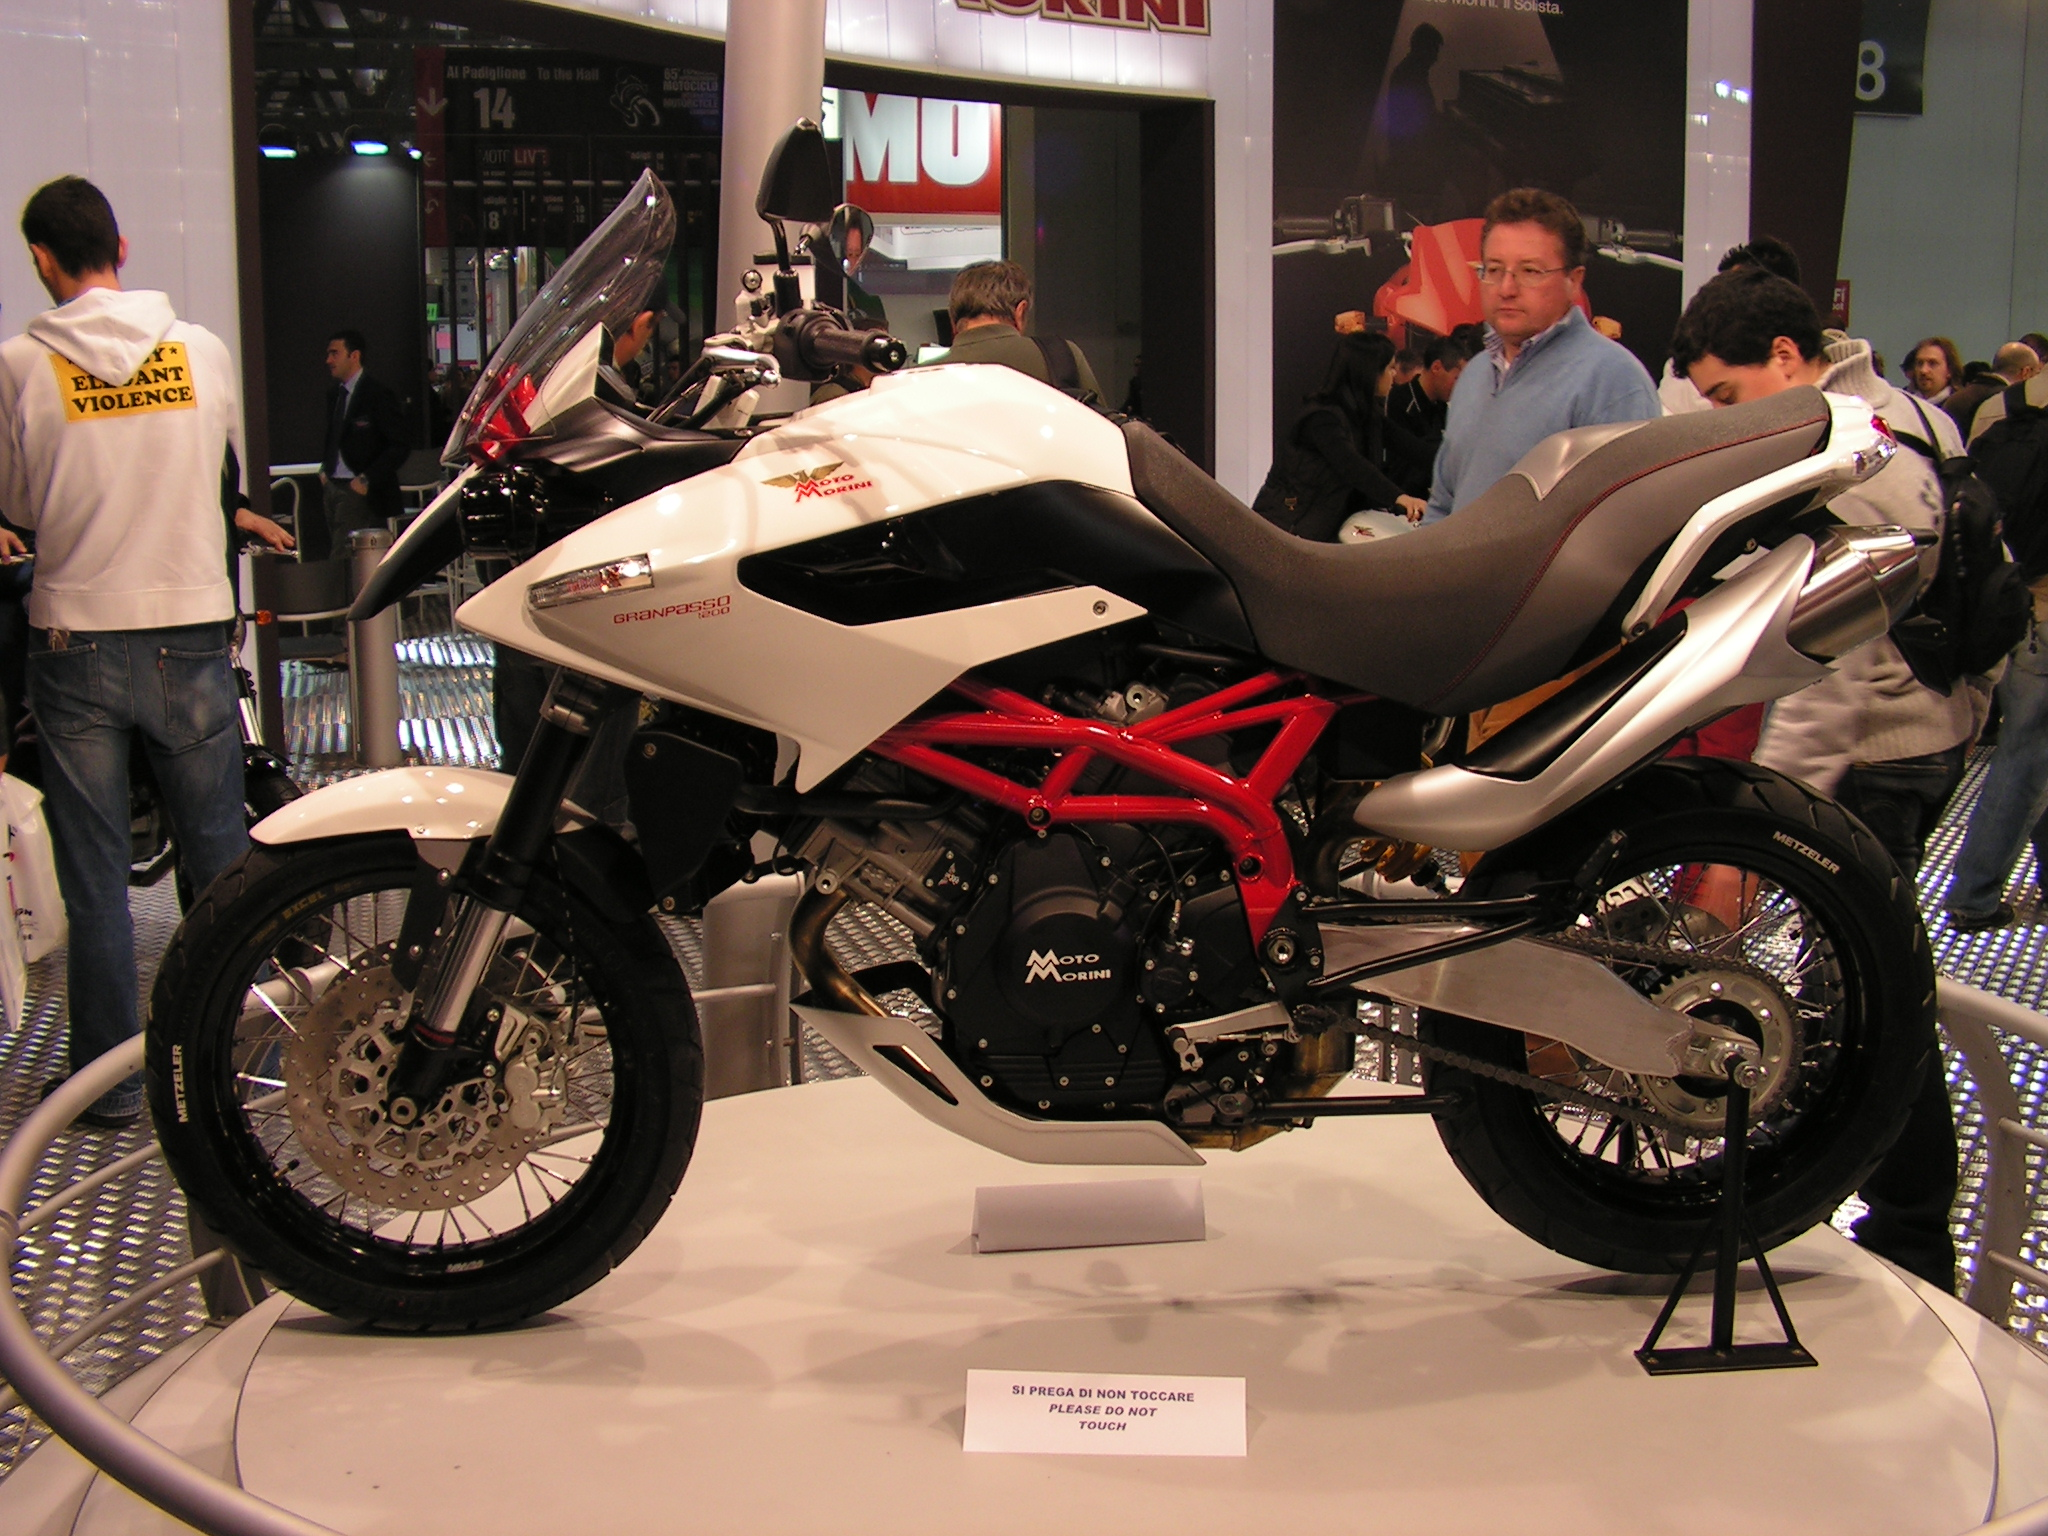 Moto Morini Unspecified category #5